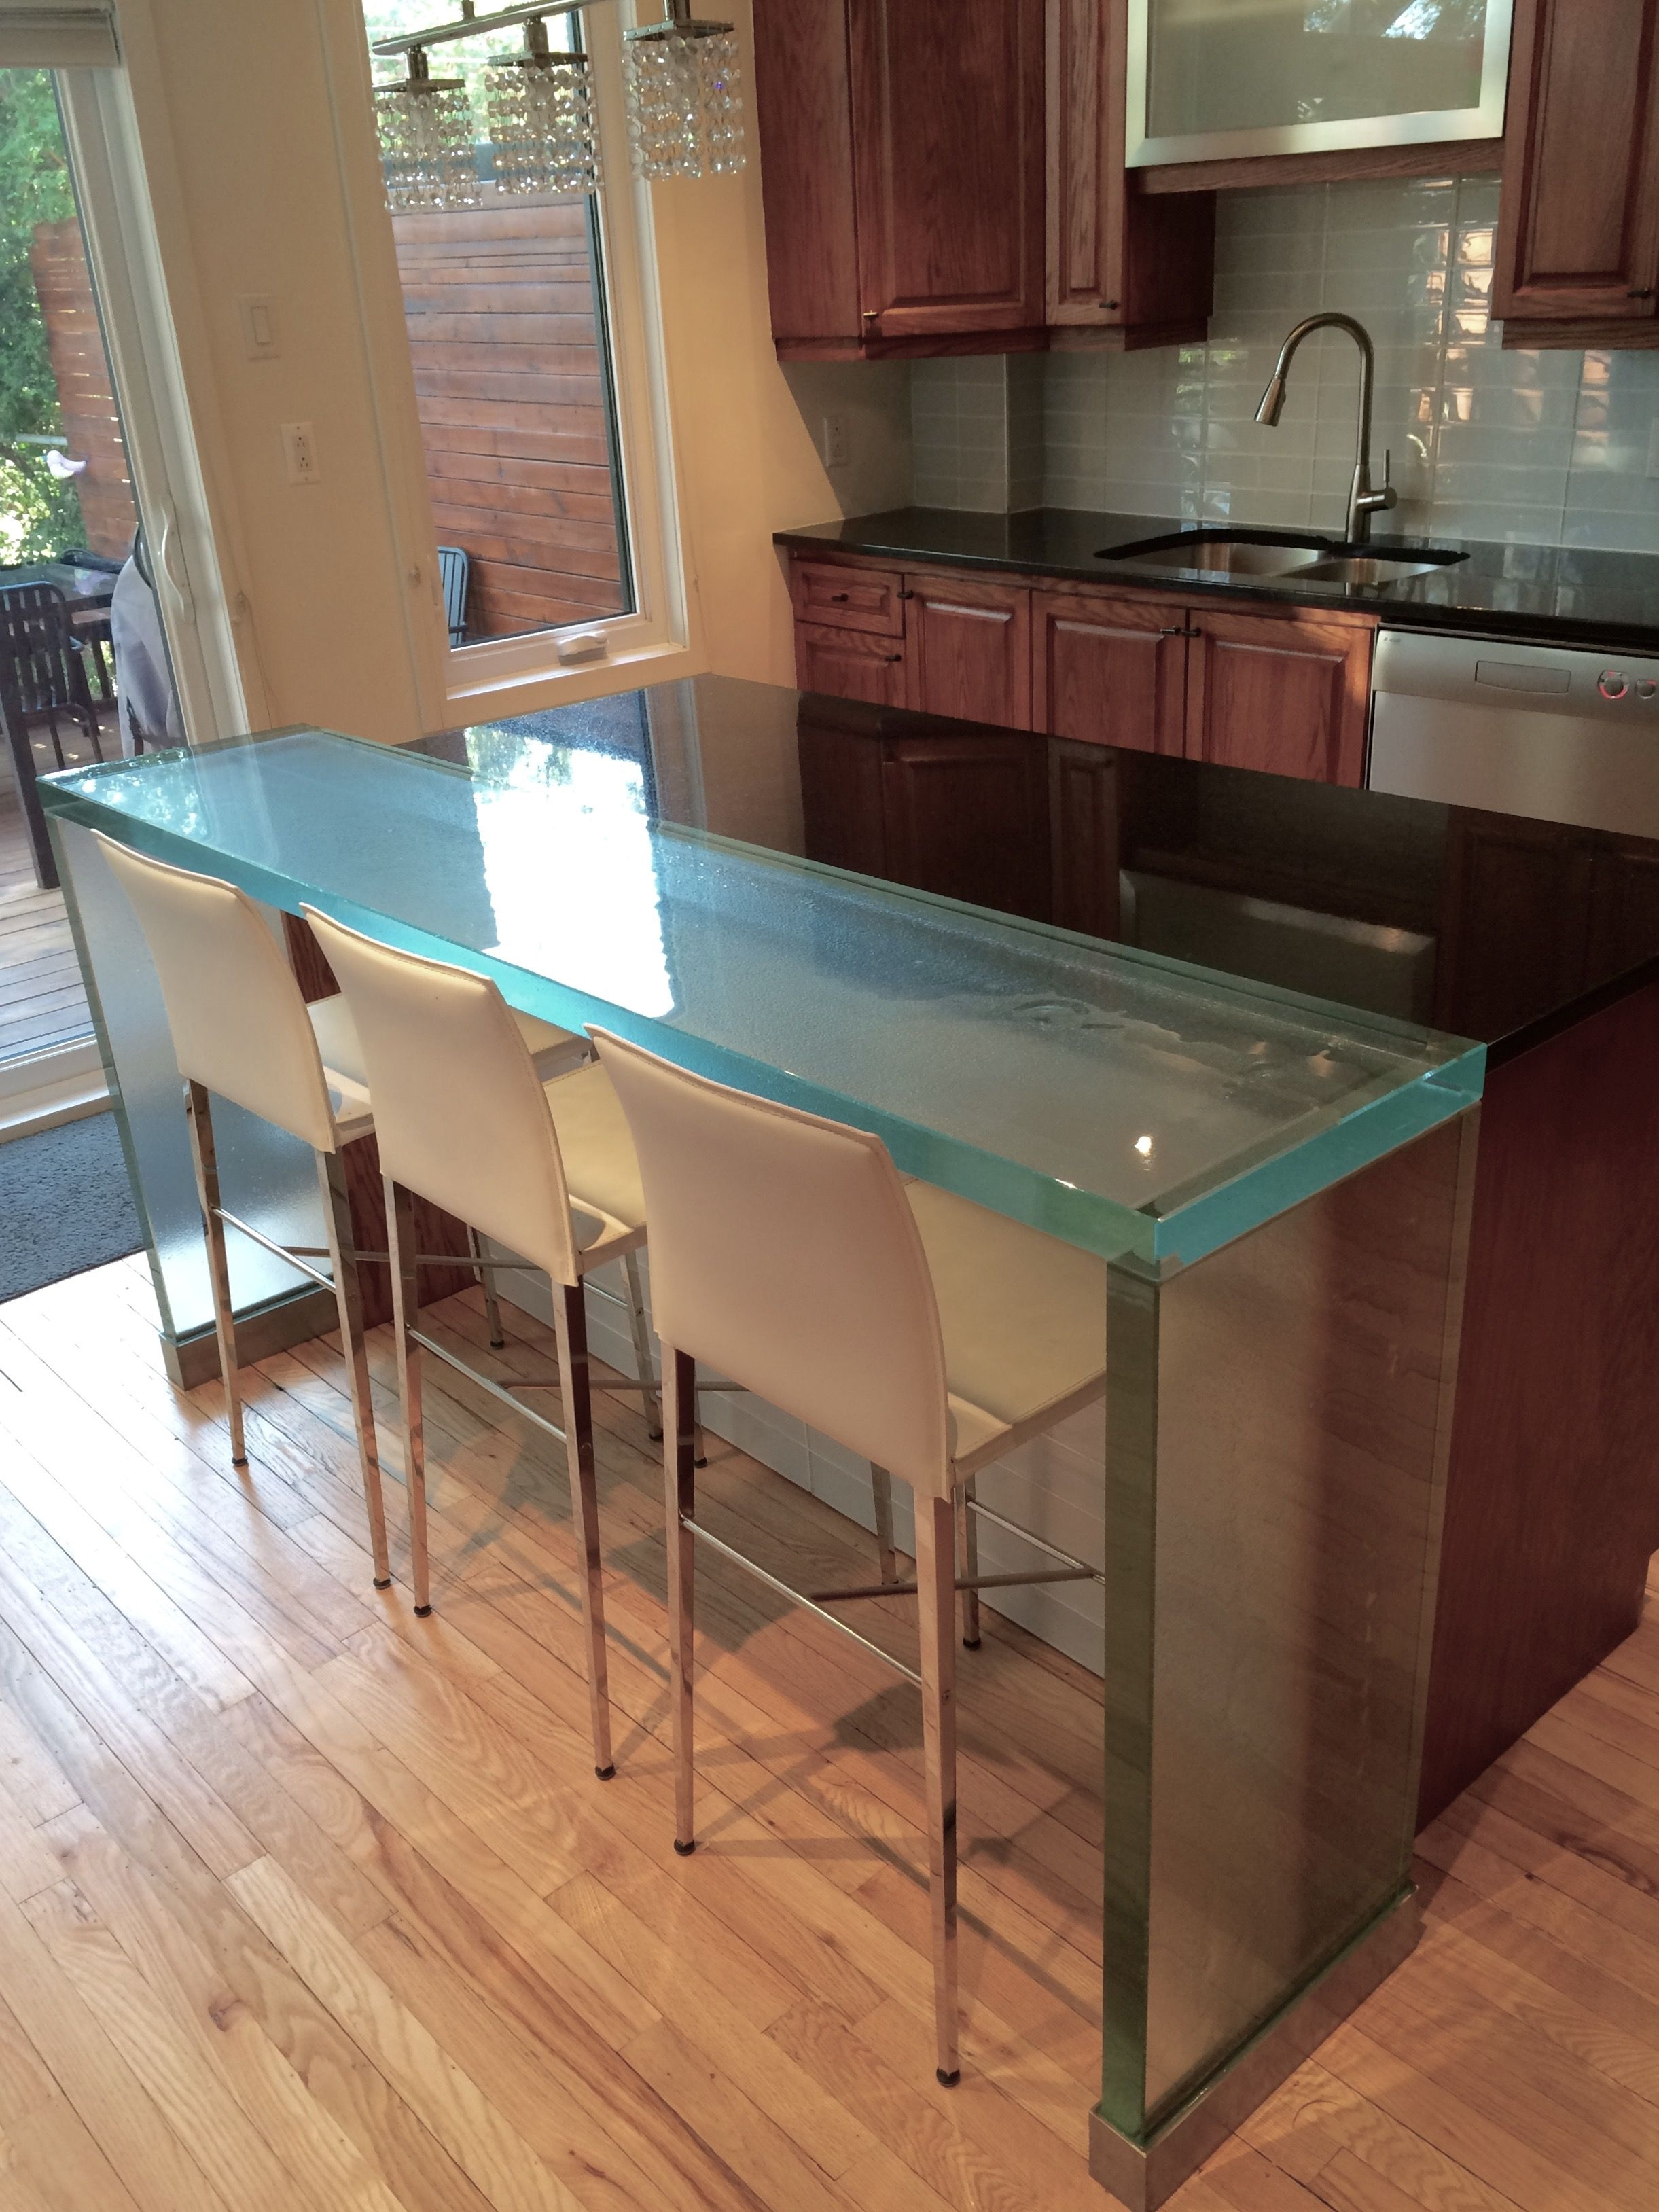 Think Glass Countertops Thinkglass Lunch Counter And Waterfall Legs Thinkglass